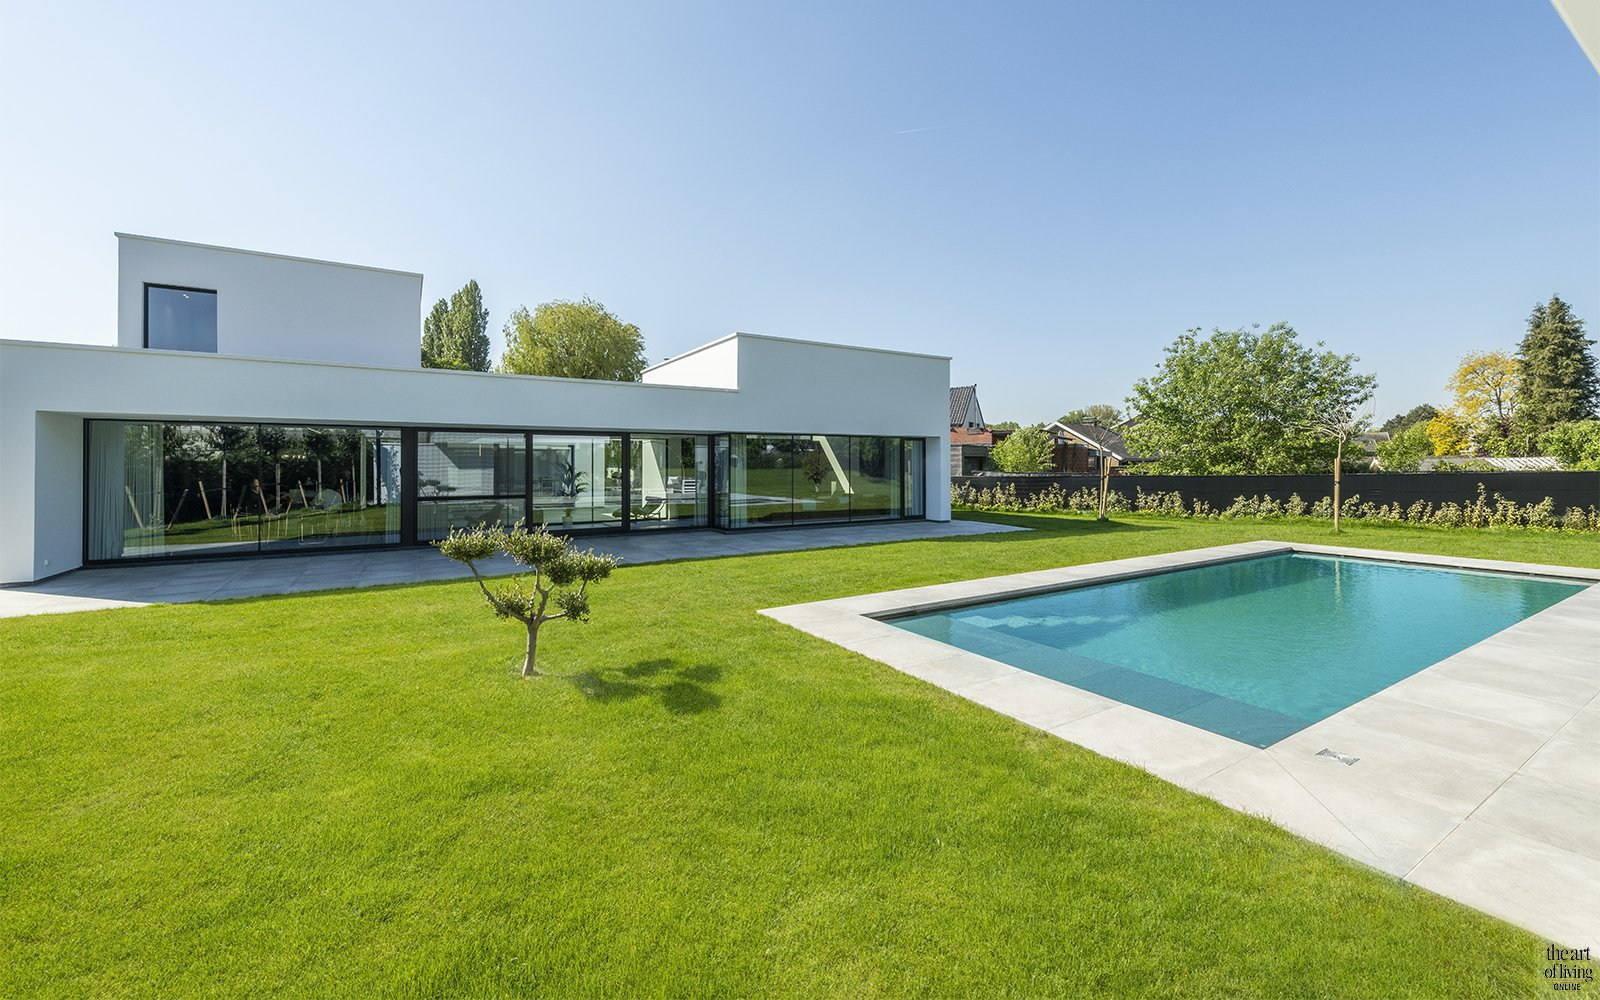 Moderne woning, Steven De Jaeghere. the art of living